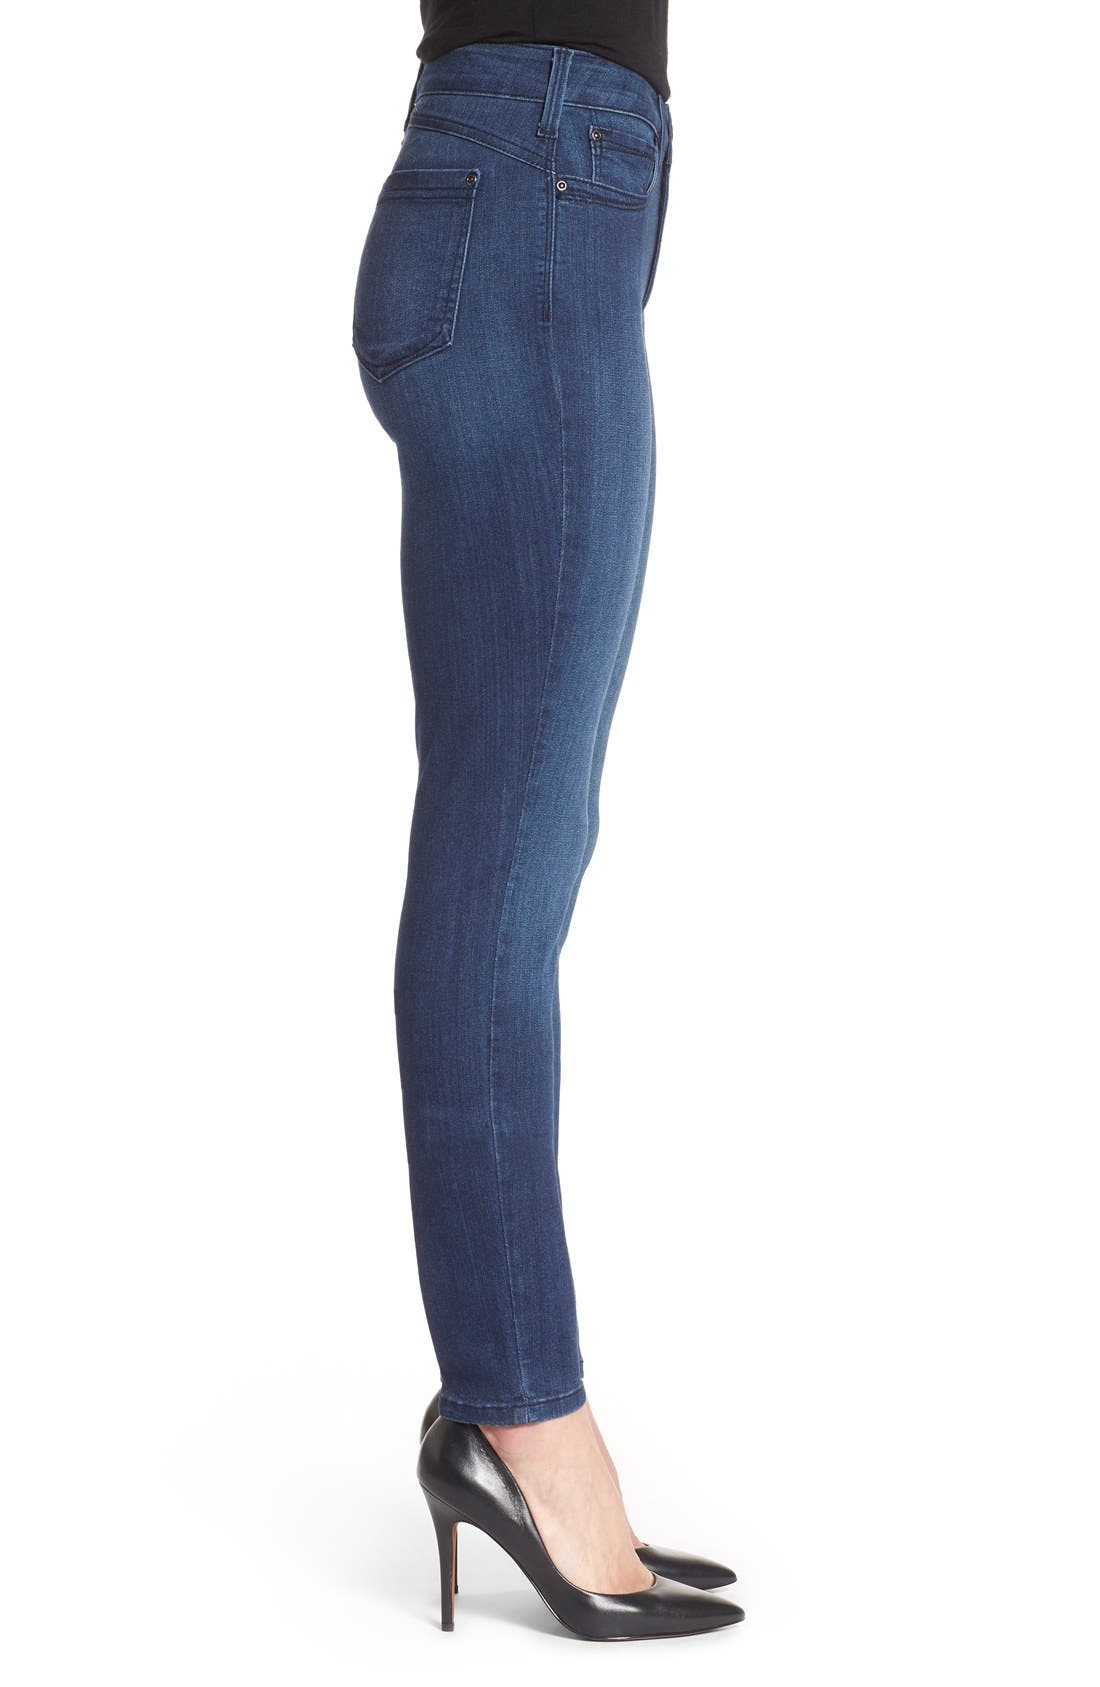 'Ami' Stretch Skinny Jeans,                             Alternate thumbnail 16, color,